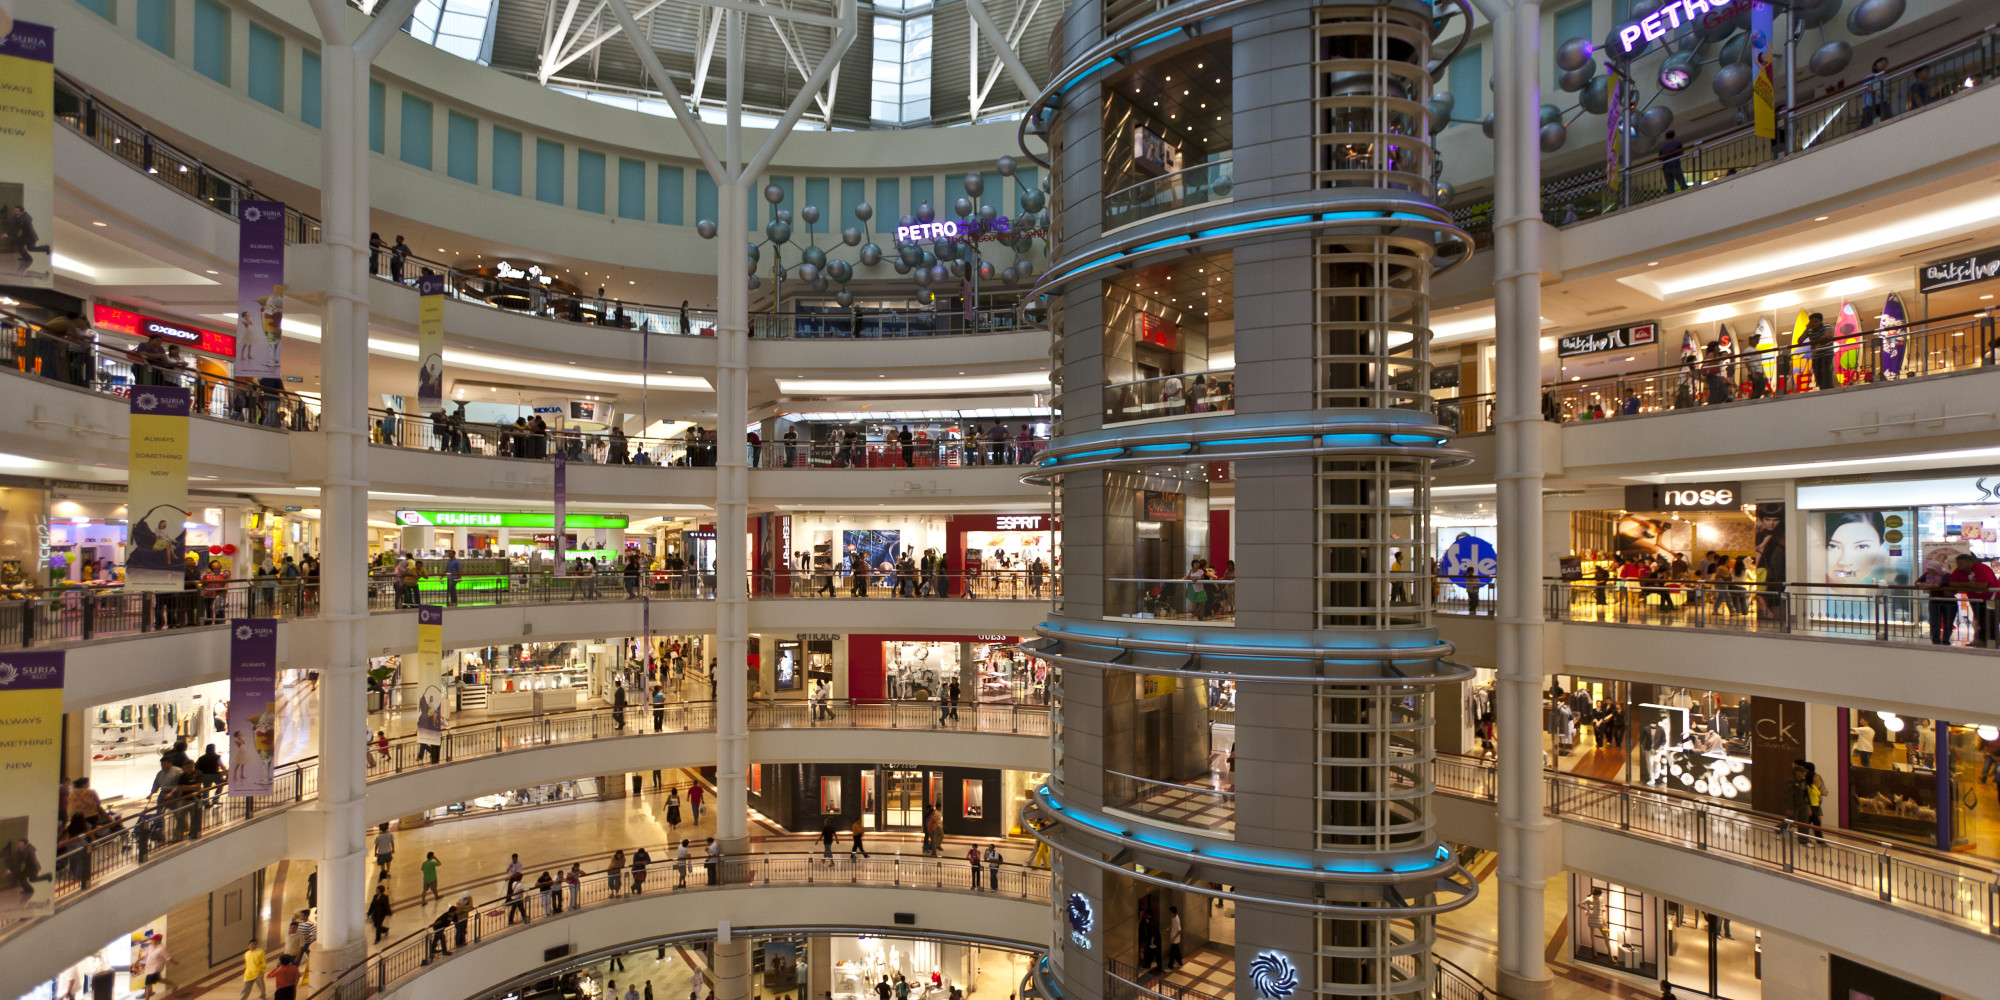 BEST SHOPPING CENTERS IN SAN FRANCISCO